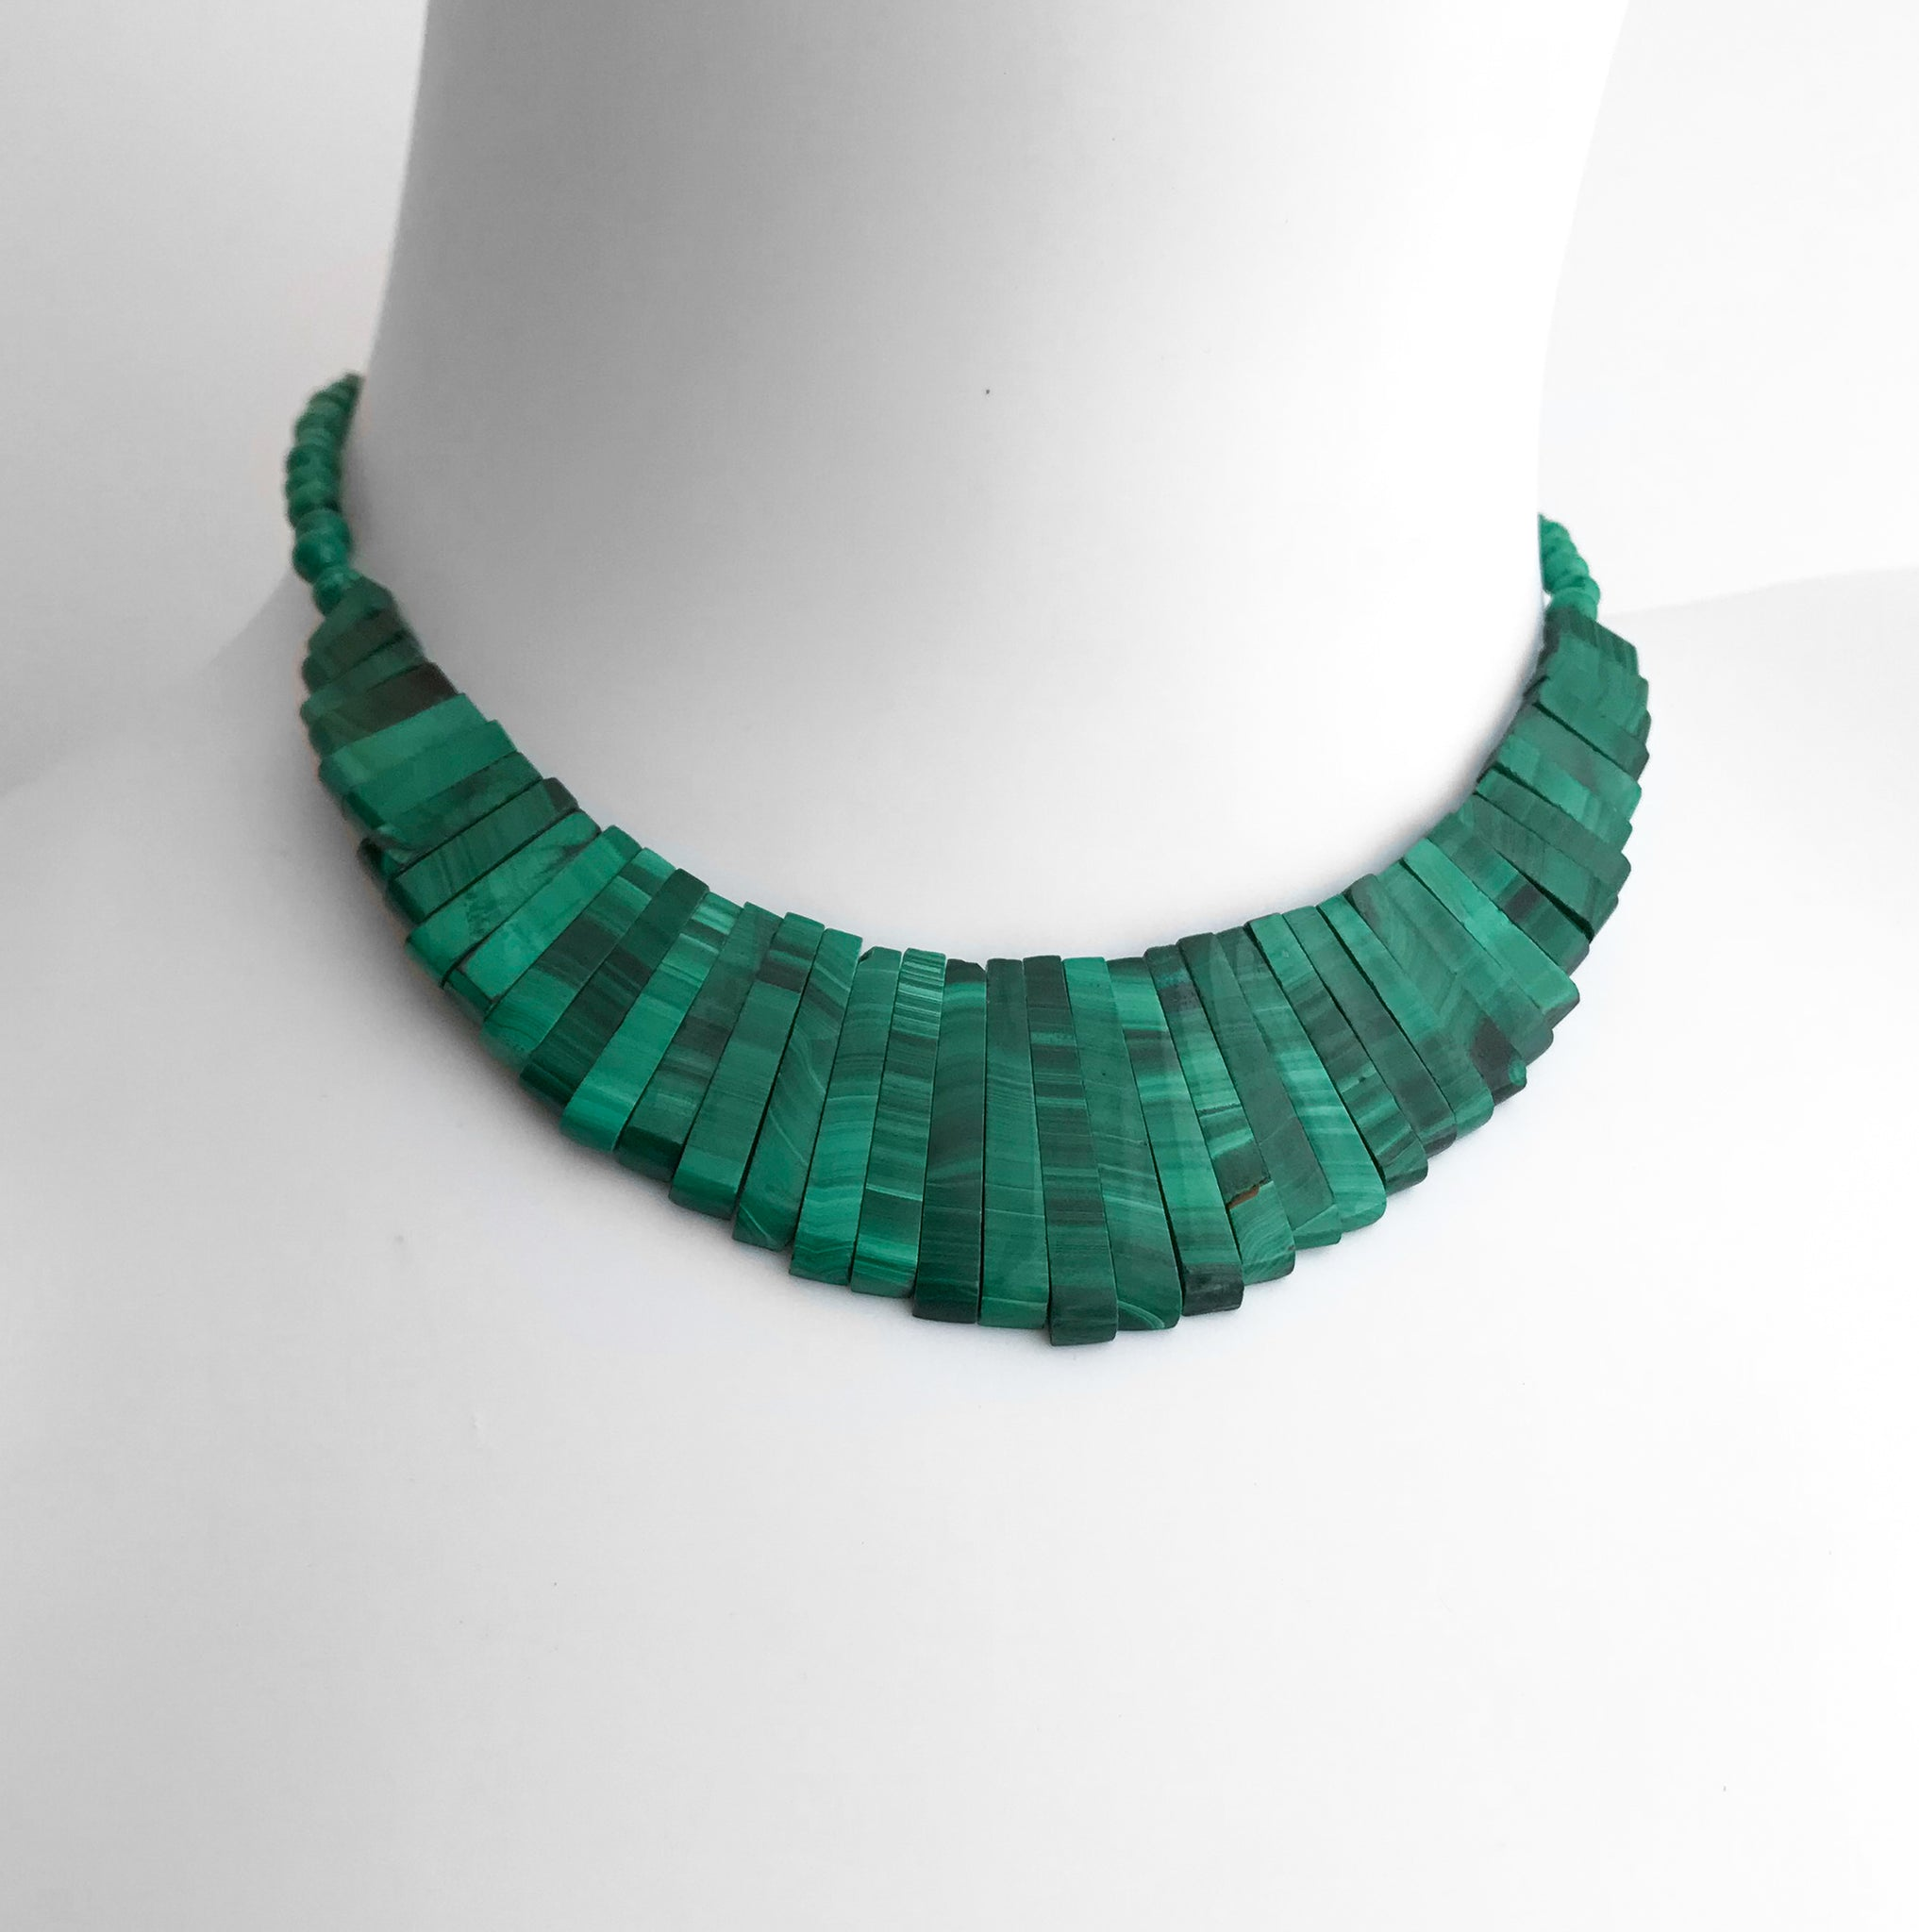 Vintage Malachite Necklace. Find this and other Vintage jewellery for sale at Intovintage.co.uk. Into Vintage